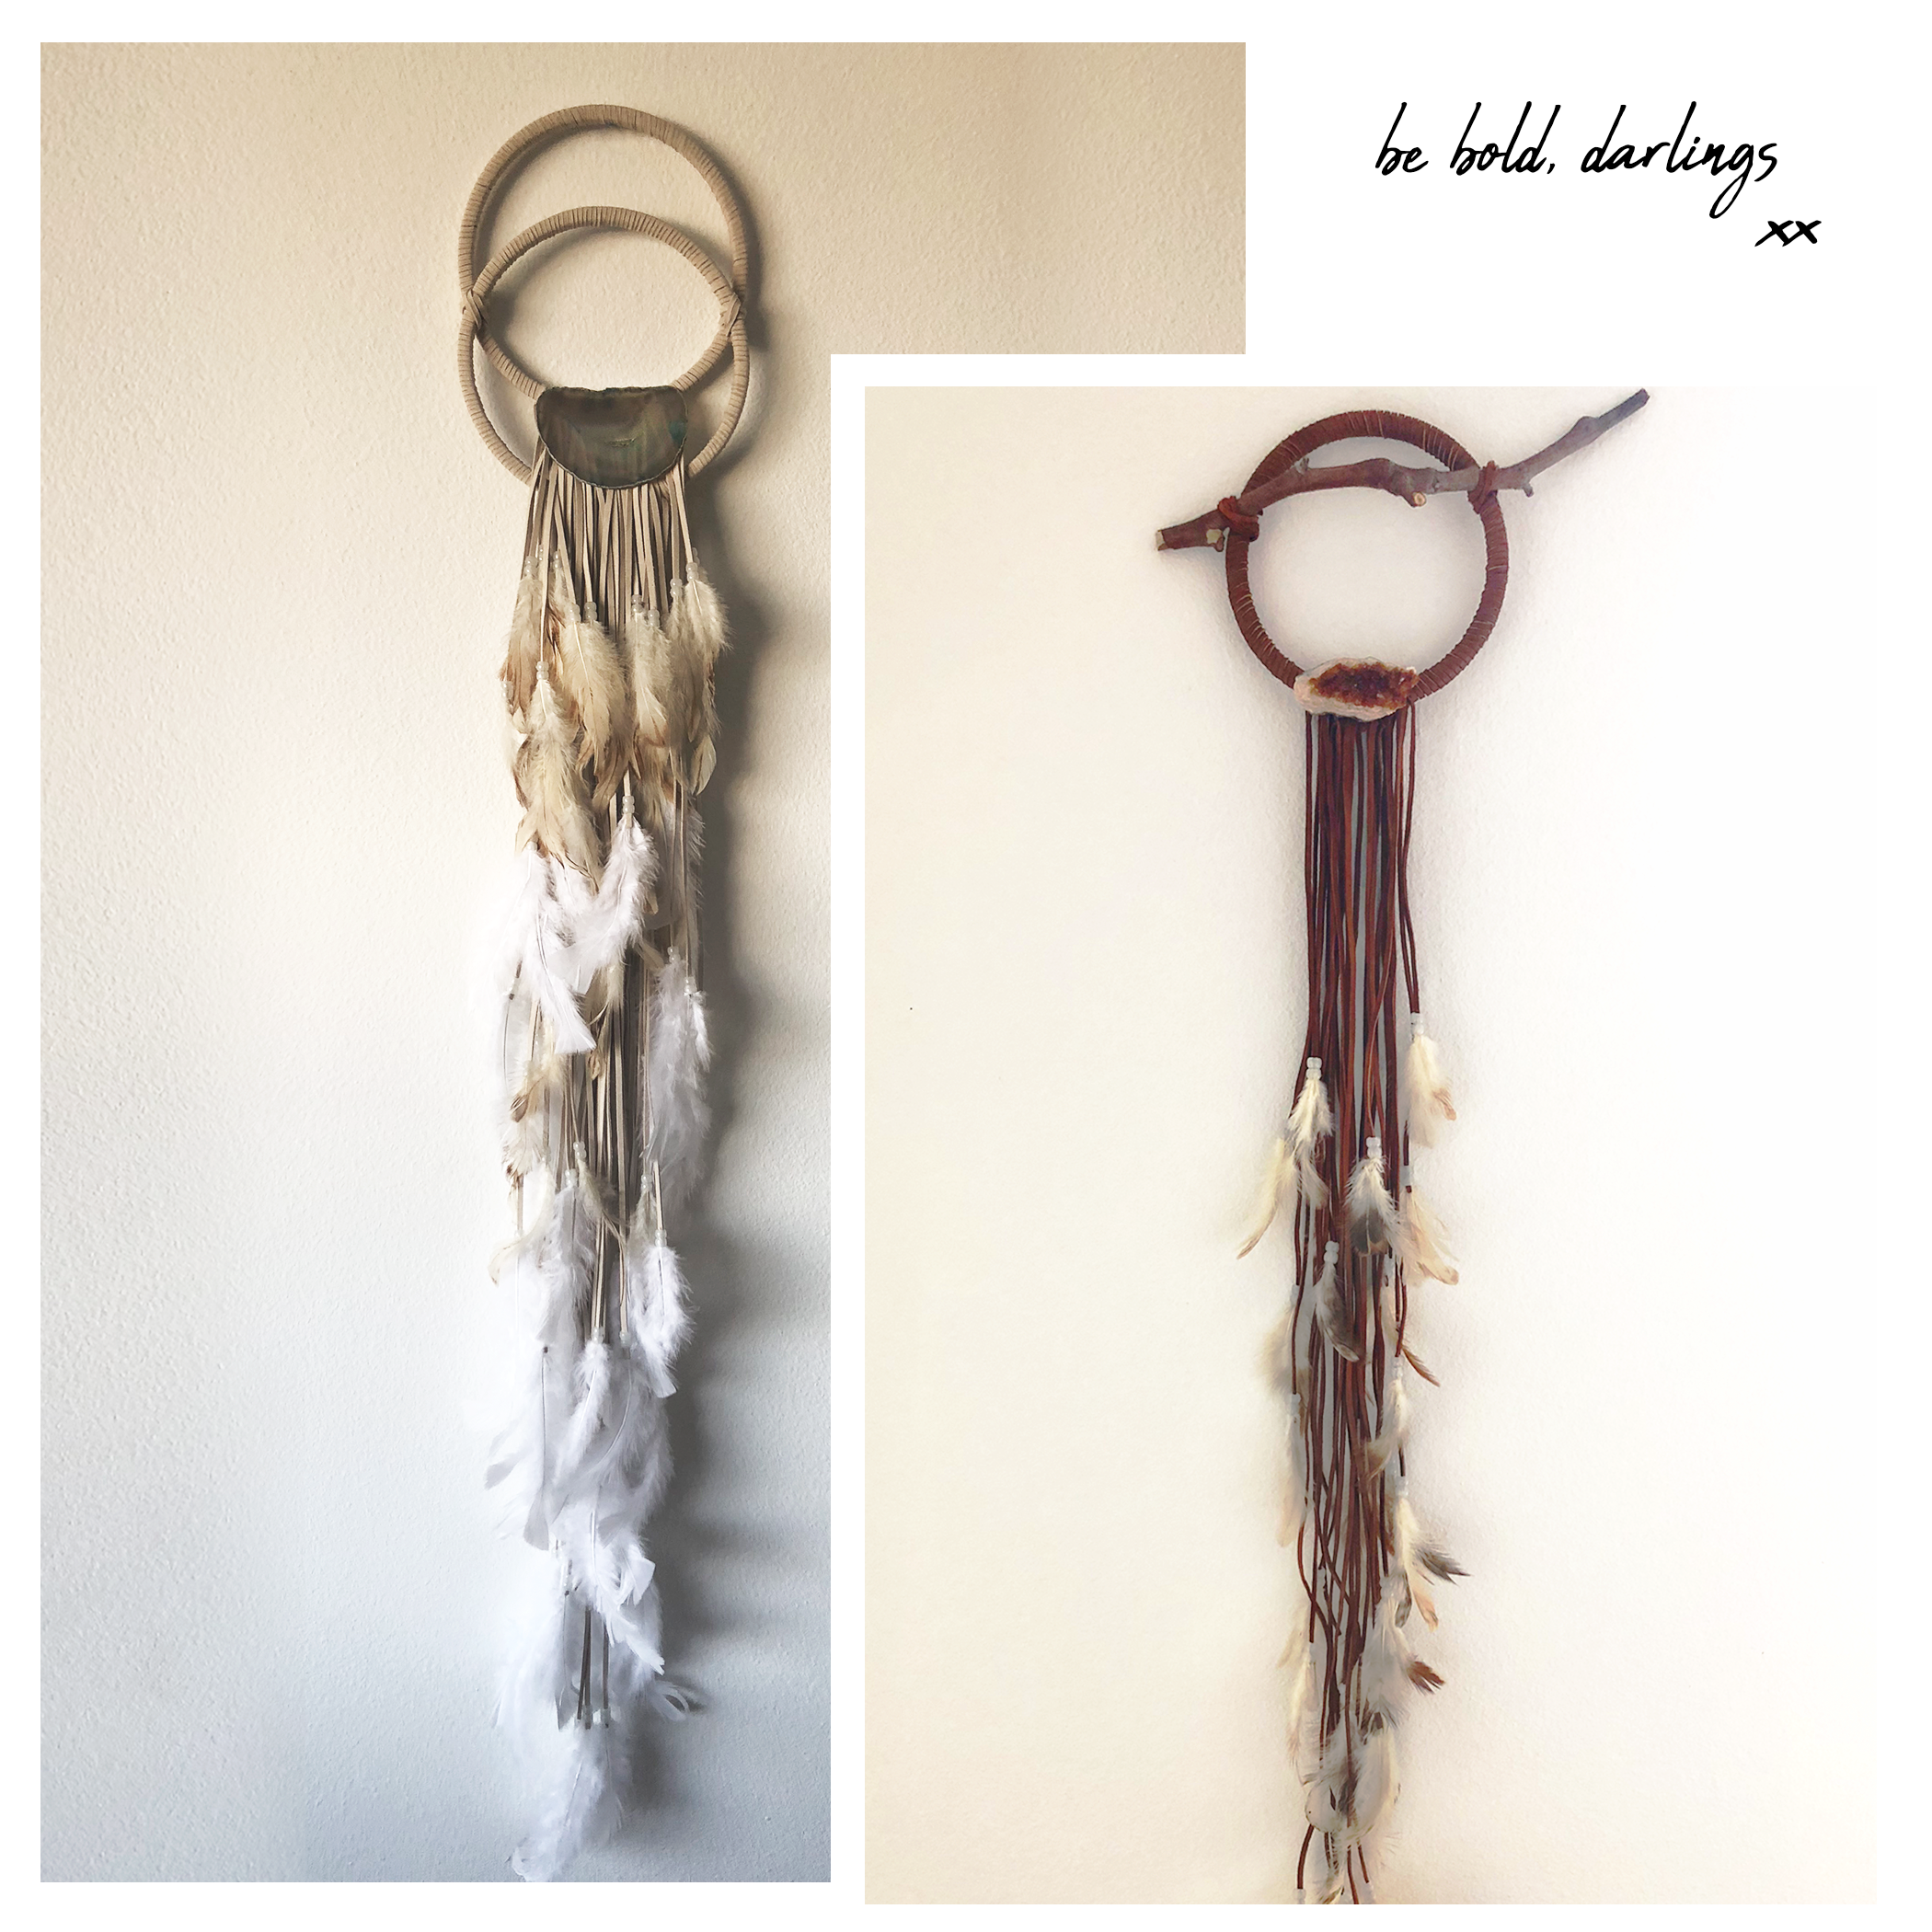 Dreamcatcher wisdom: Be bold, darlings